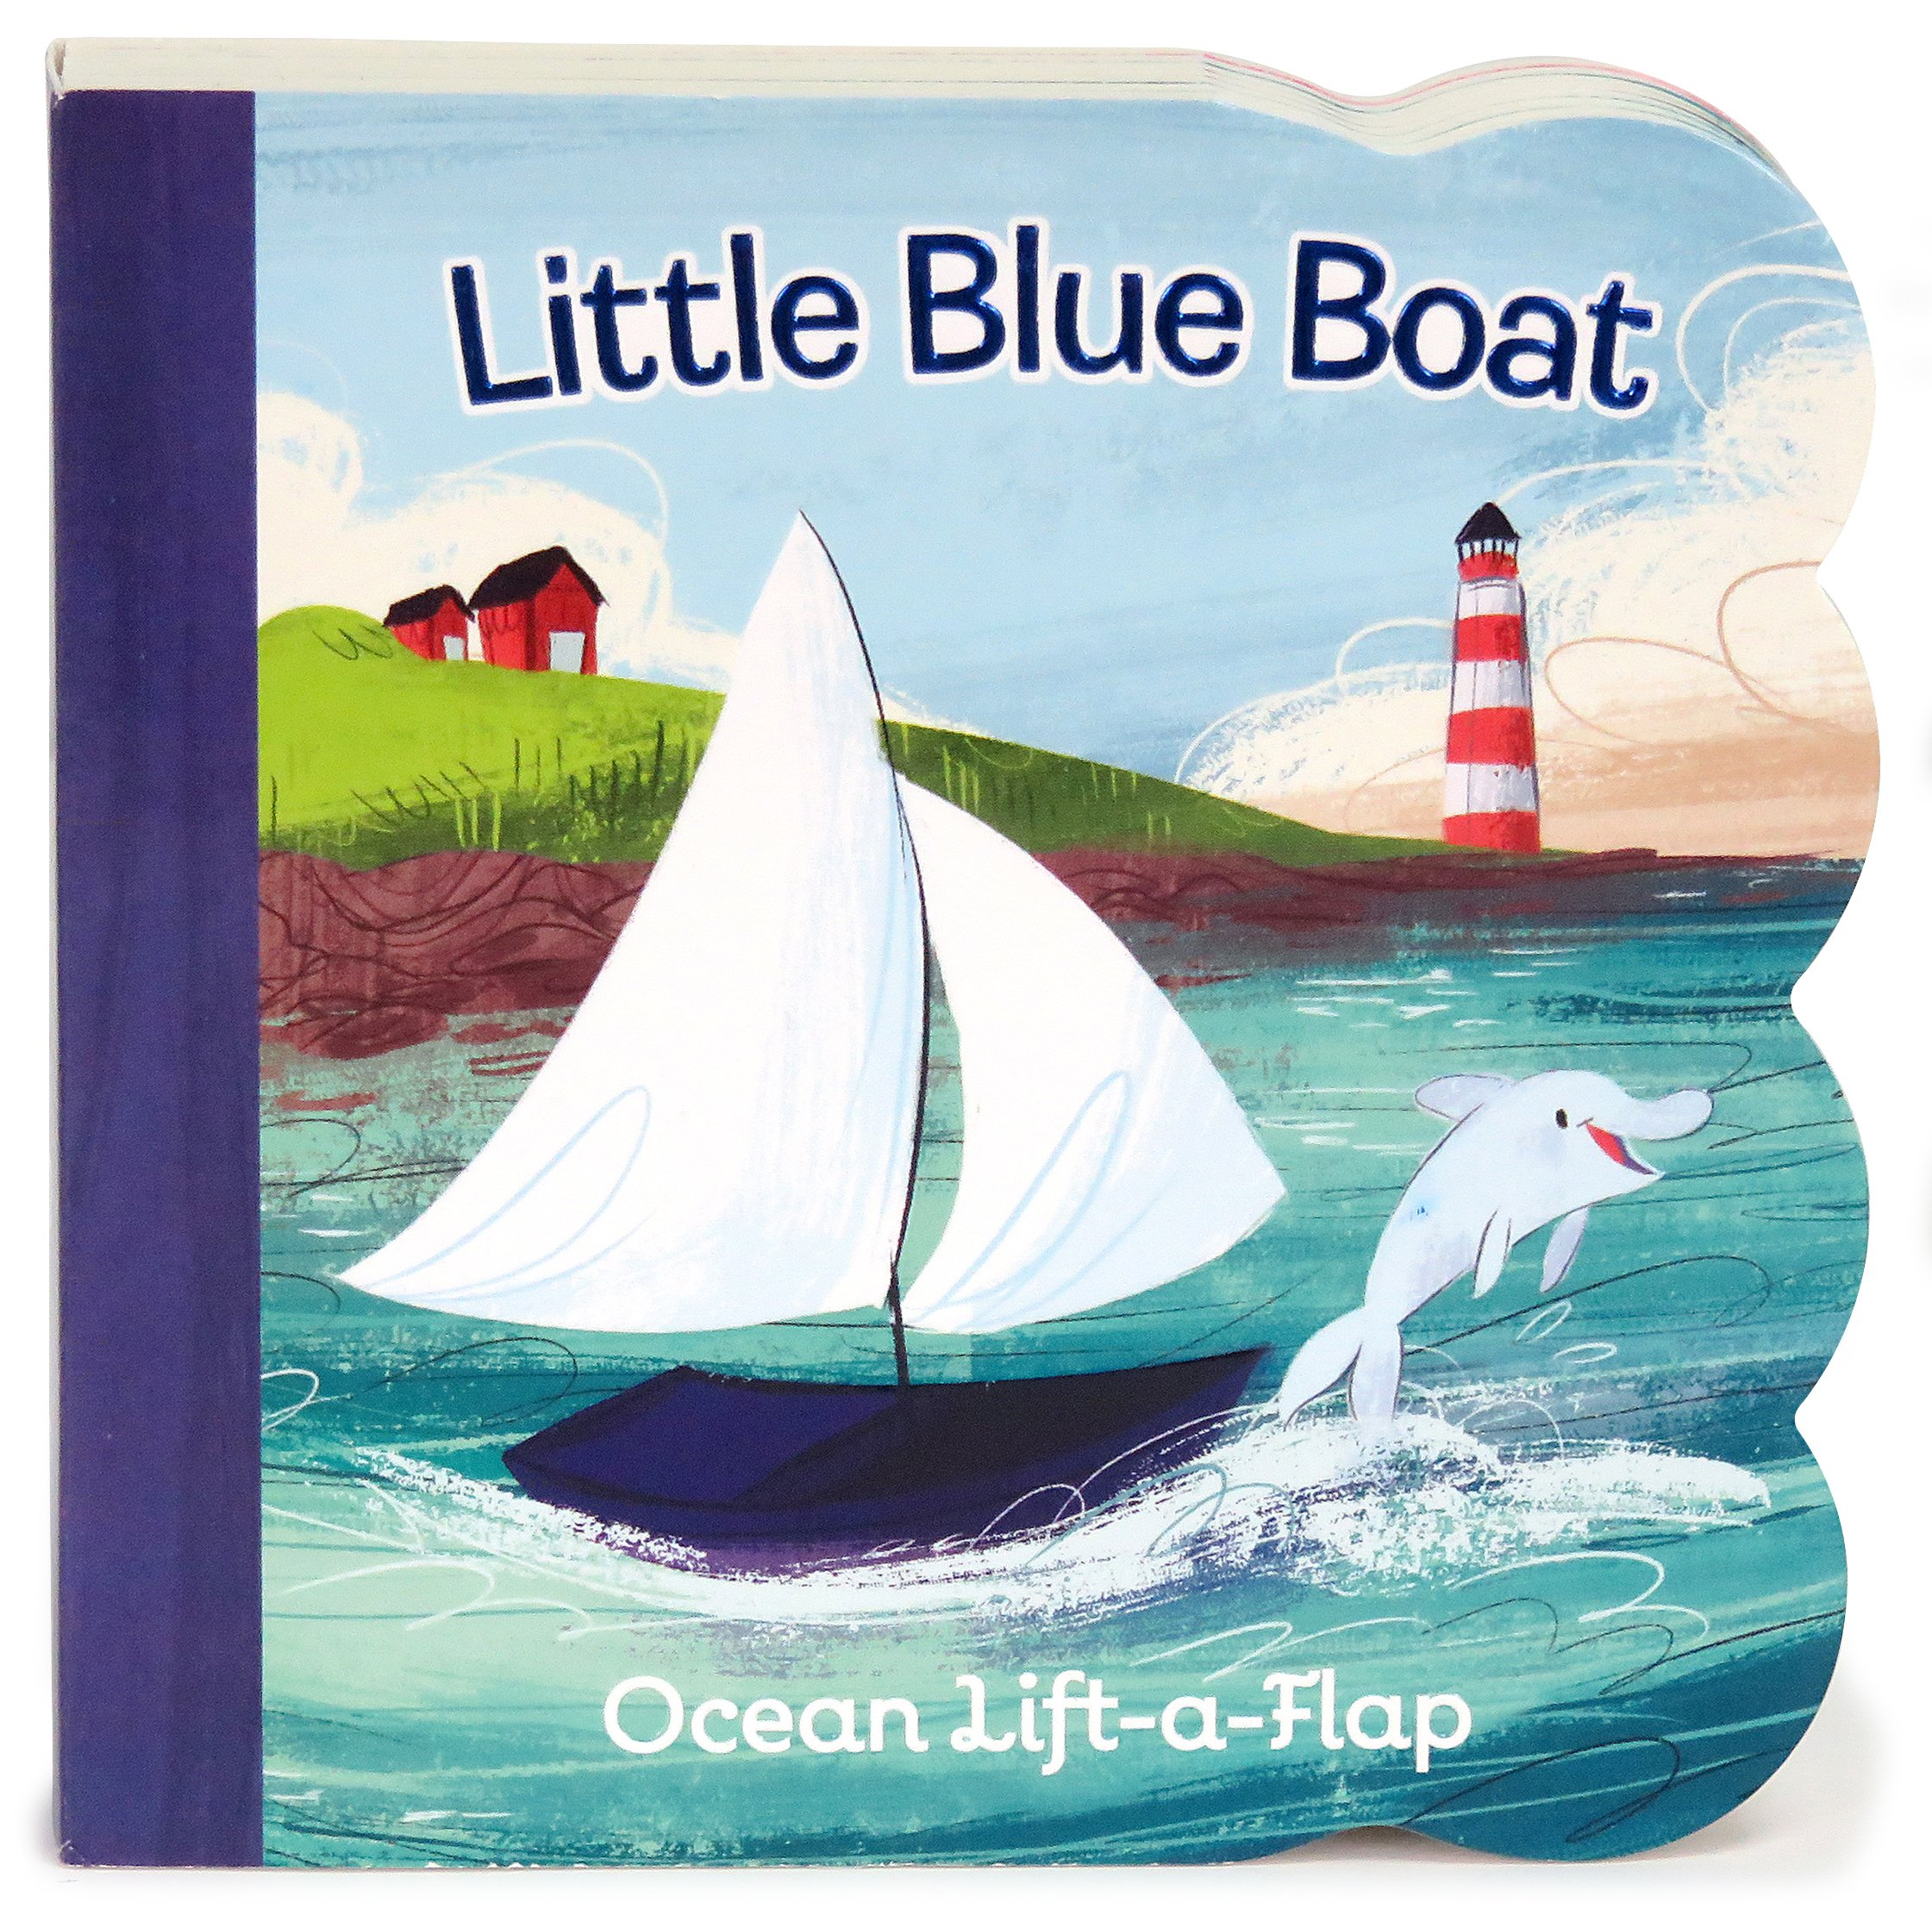 Little Blue Boat: Lift-a-Flap Board Book (Babies Love) Board book – January 15, 2016 Ginger Swift Cottage Door Press Zoe Persico 1680520776